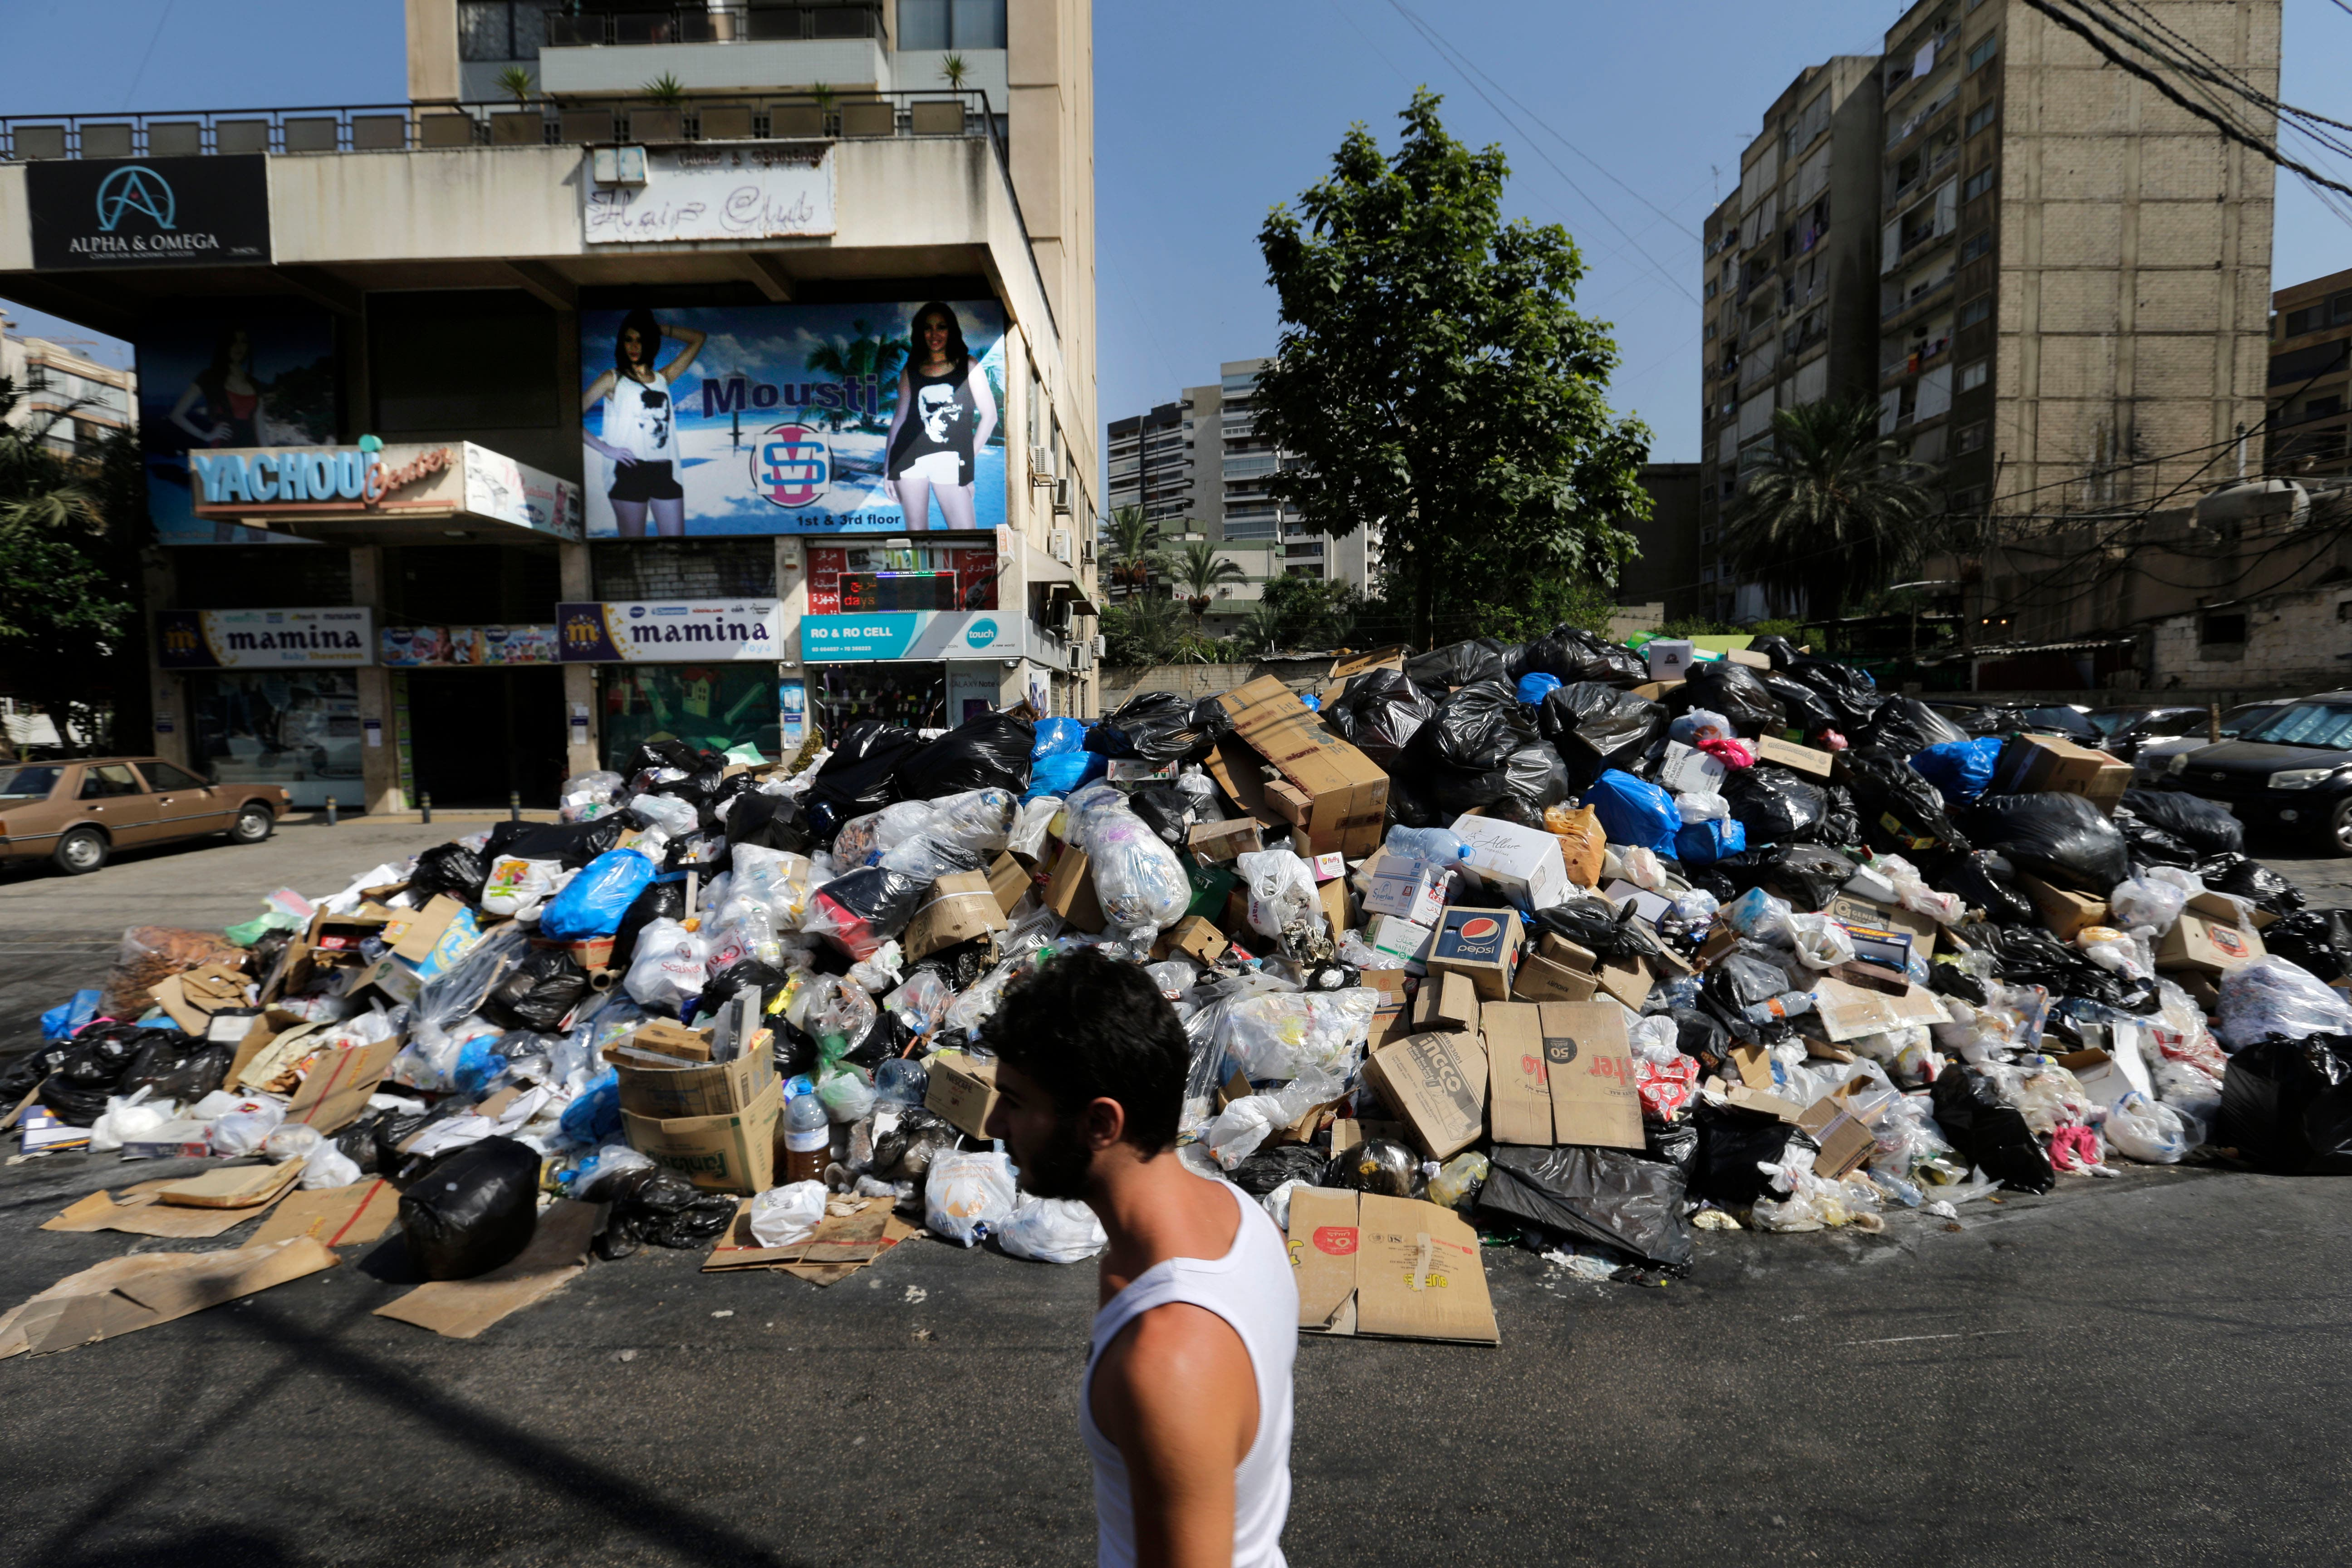 A Lebanese man passes a pile of garbage blocking a street in east Beirut, Lebanon, Monday, Aug. 17, 2015. AP